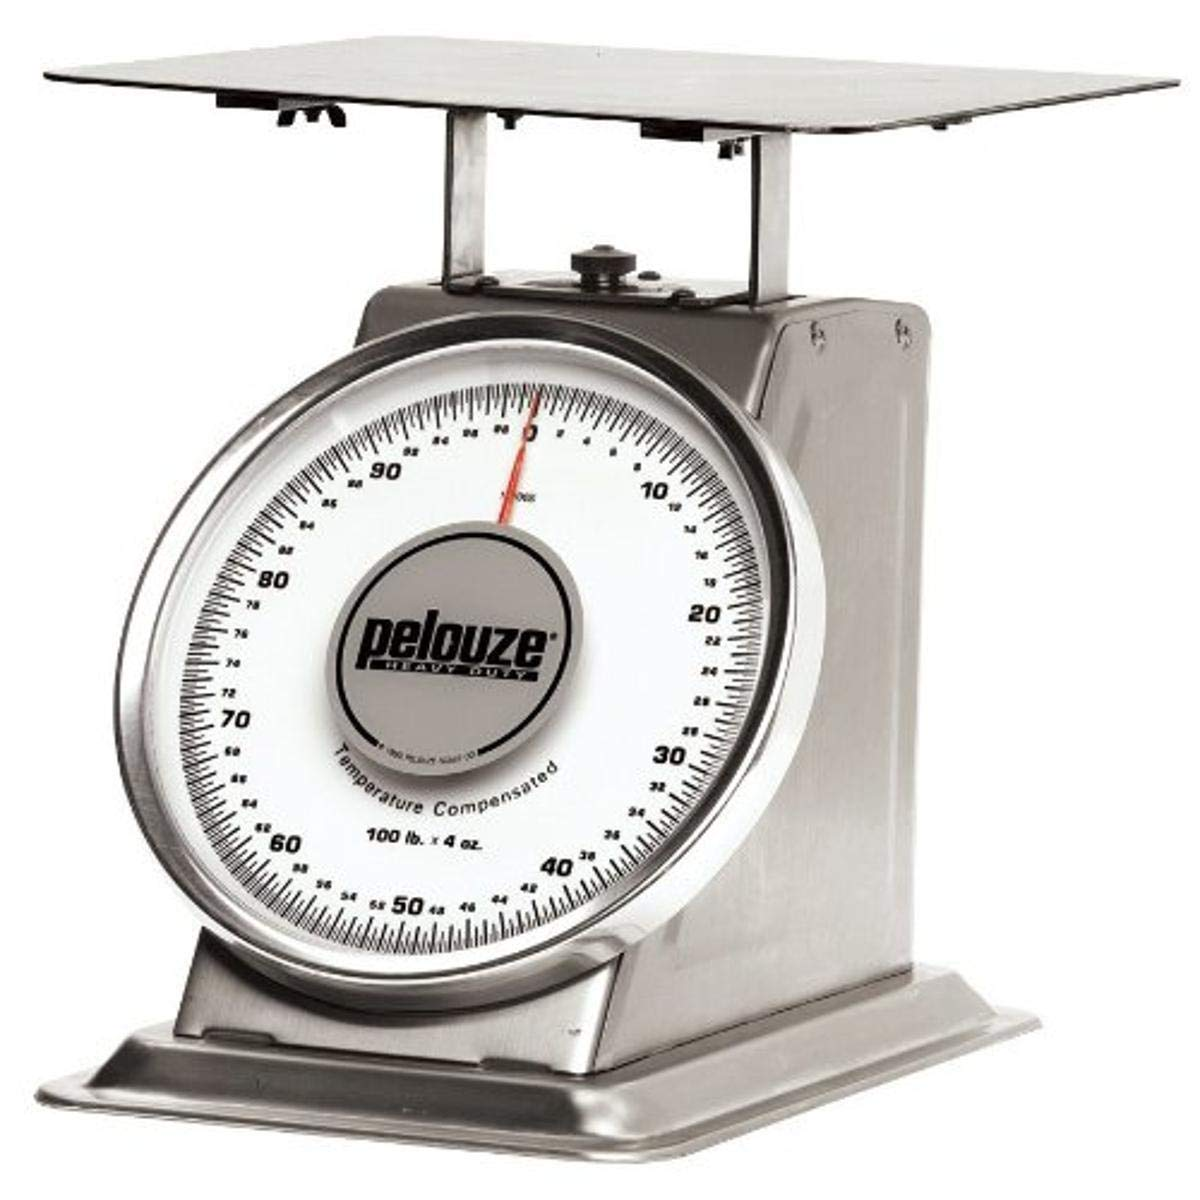 Rubbermaid Commercial Products FG10200S Pelouze Heavy-Duty Mechanical Platform Receiving Scale, Stainless Steel, 200 lb